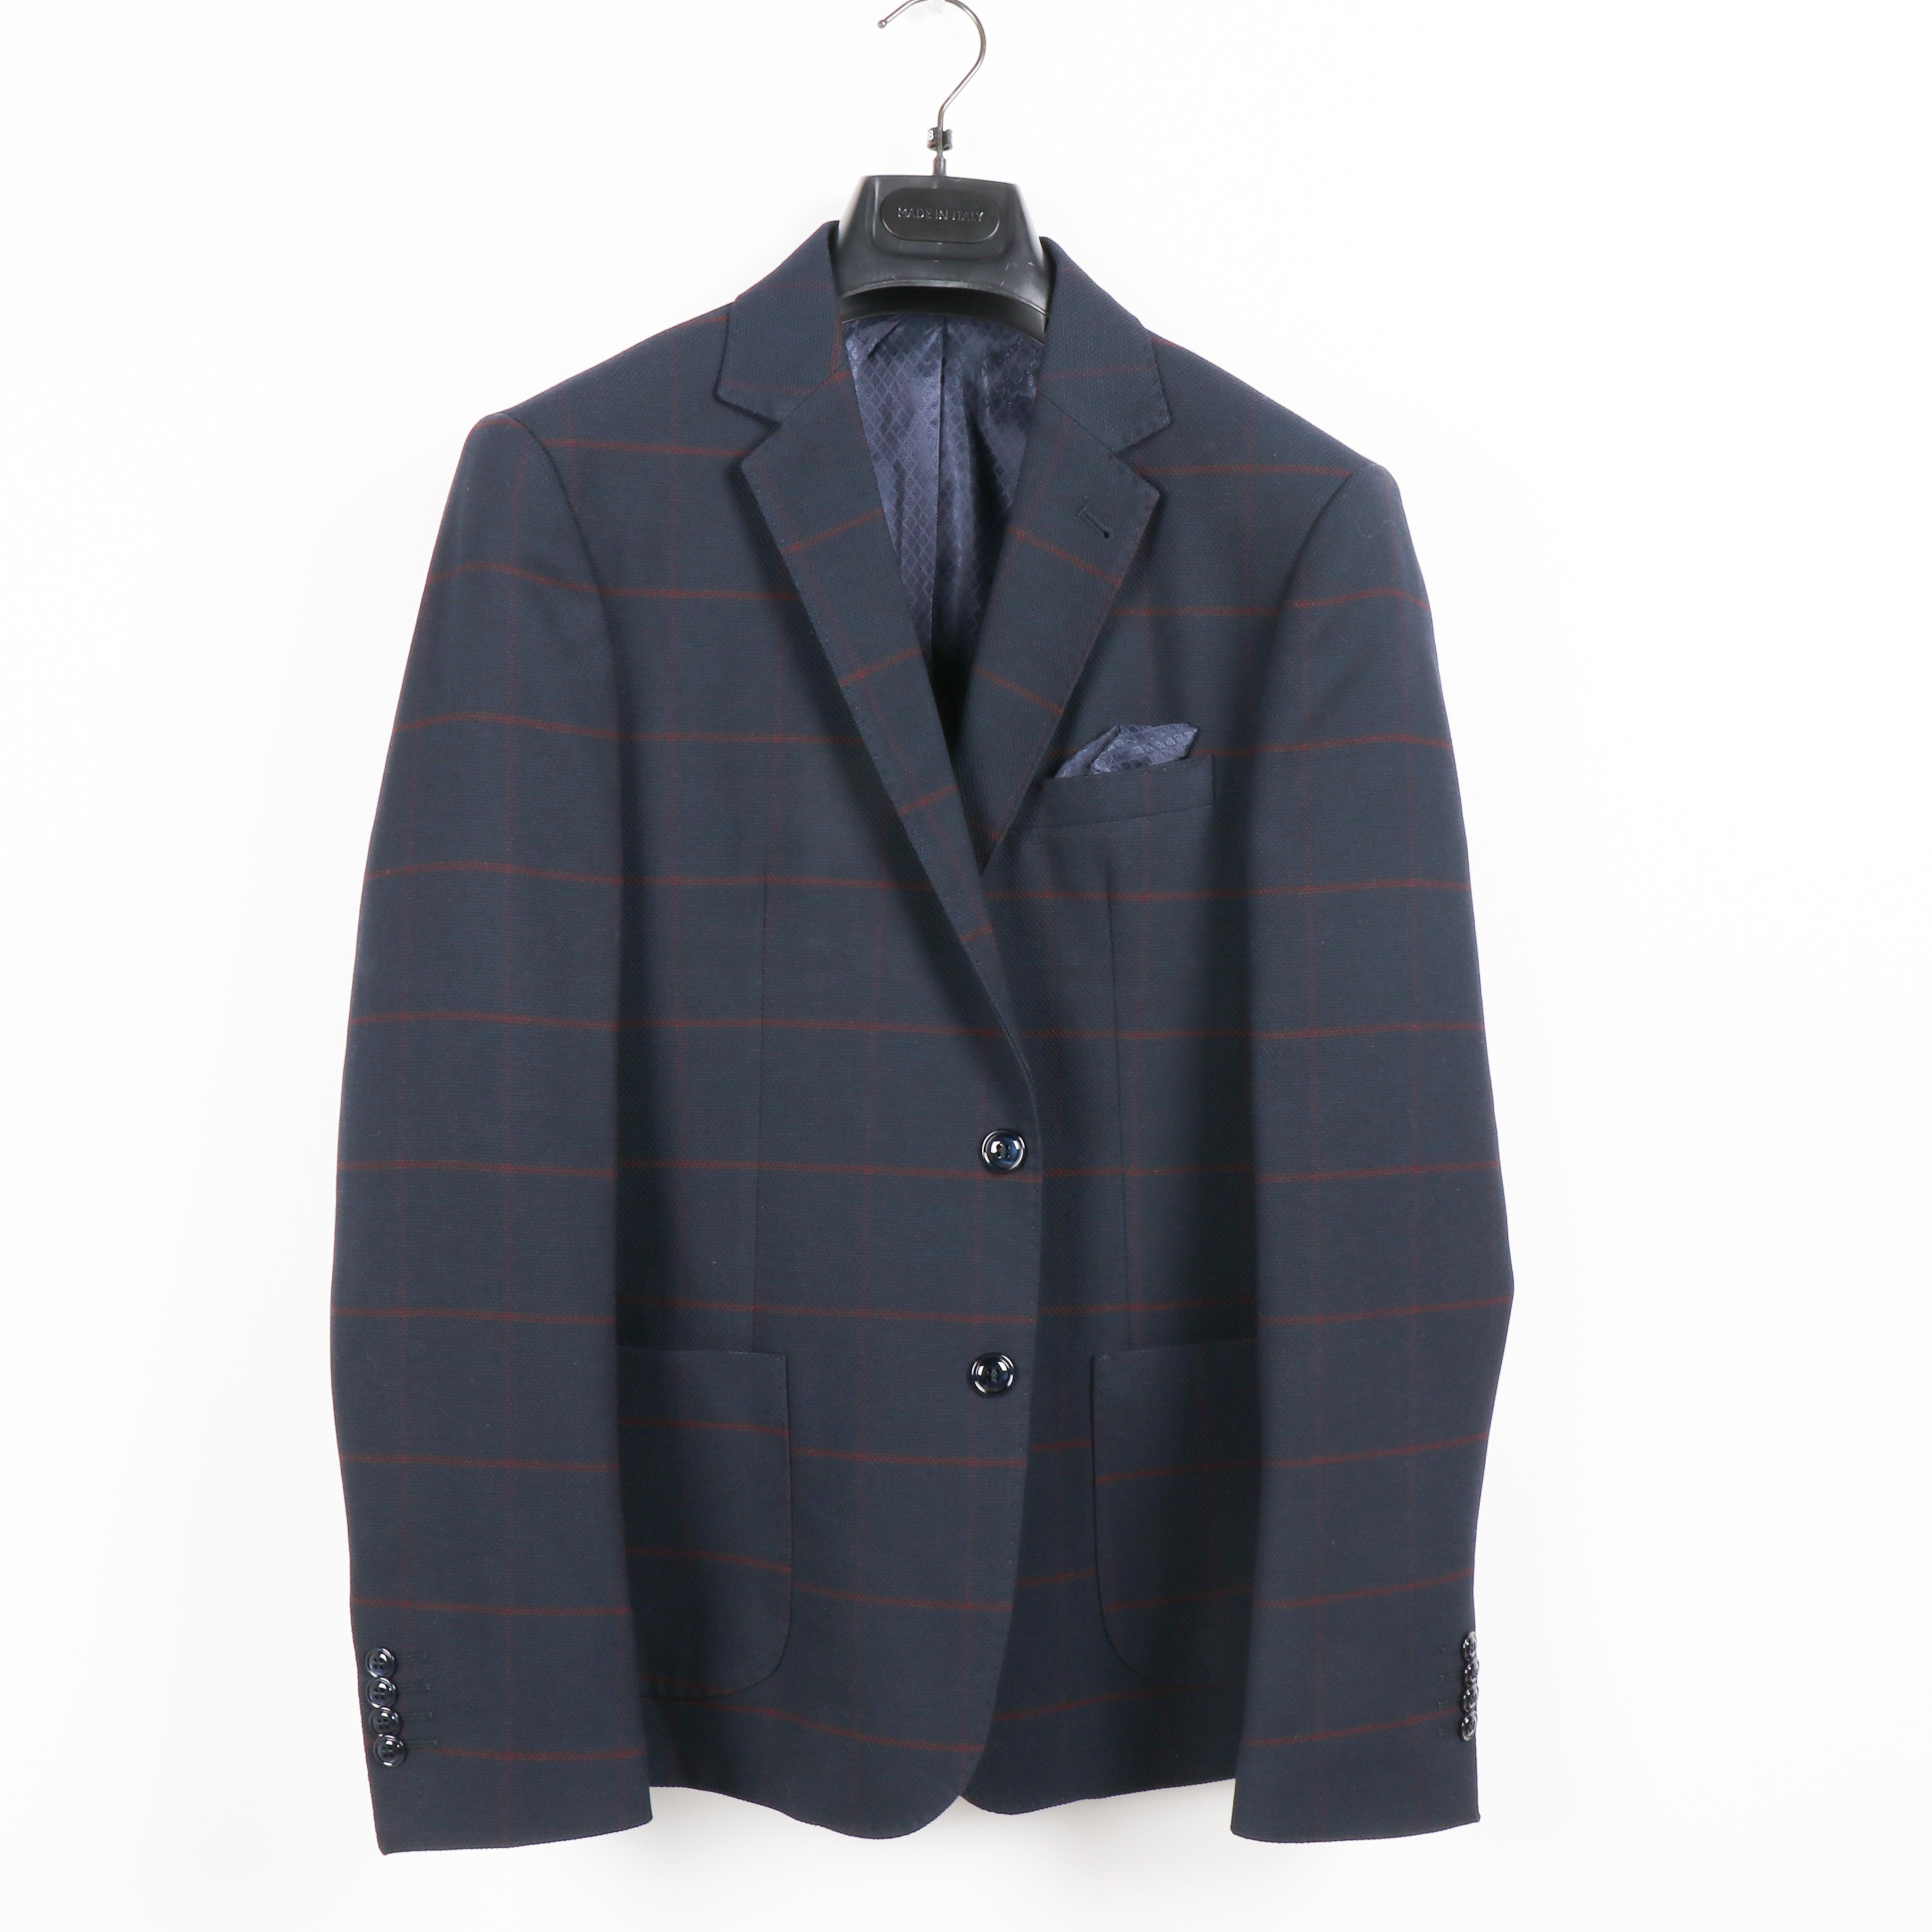 Navy Blazer, Made in Italy